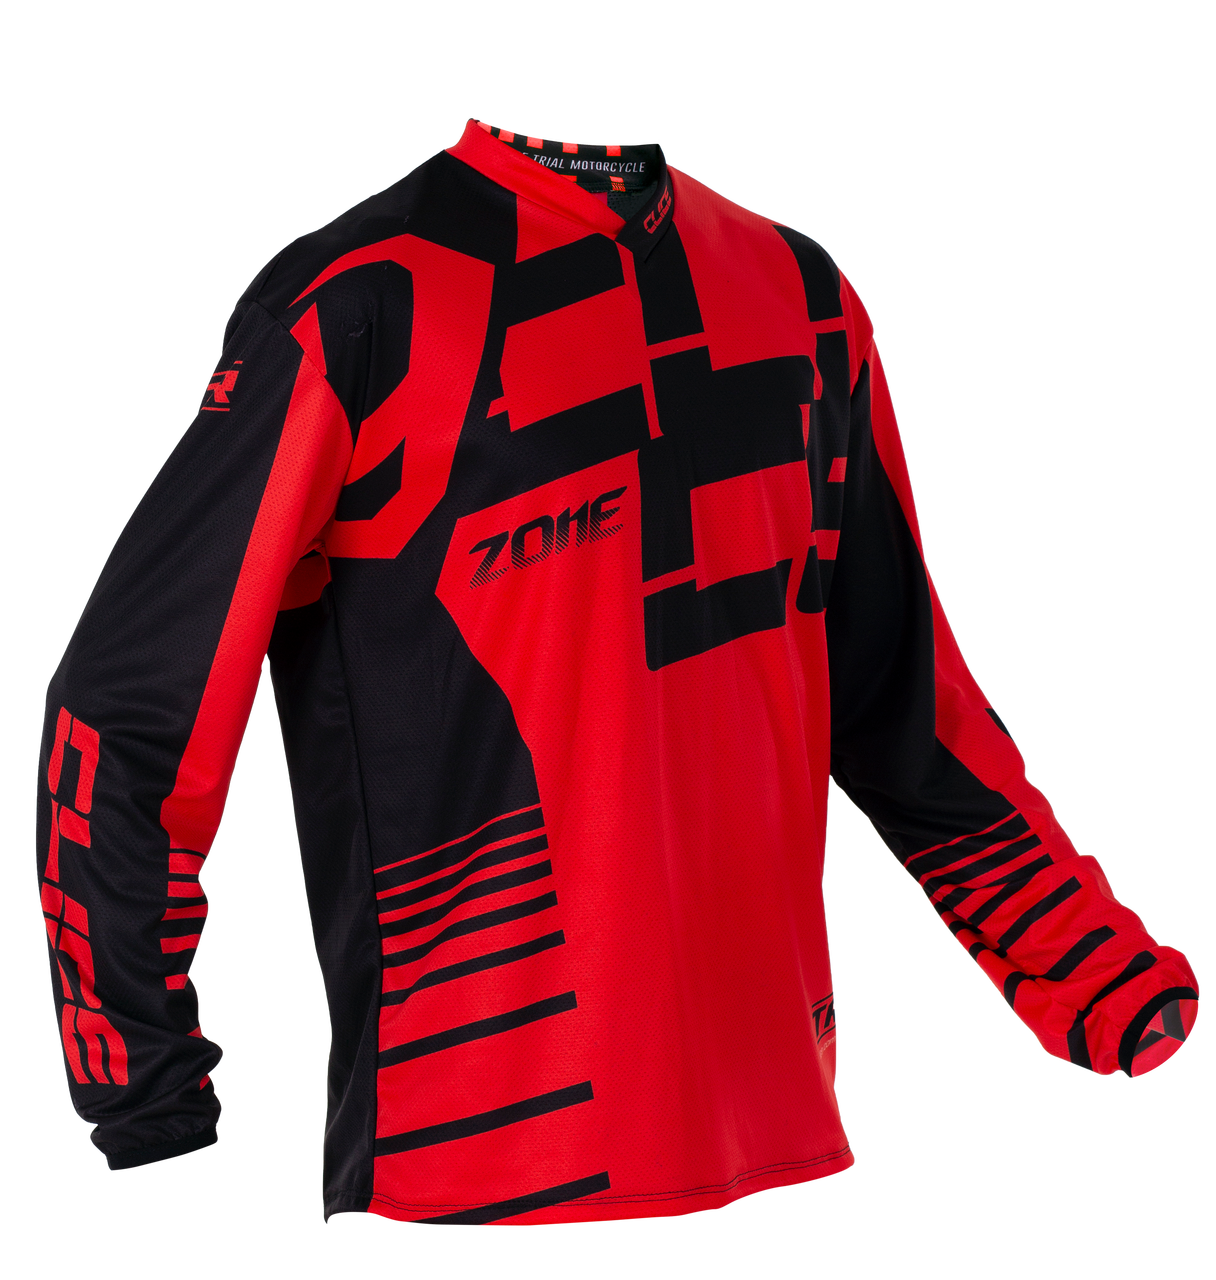 2019 Clice Zone men's jersey, red/black